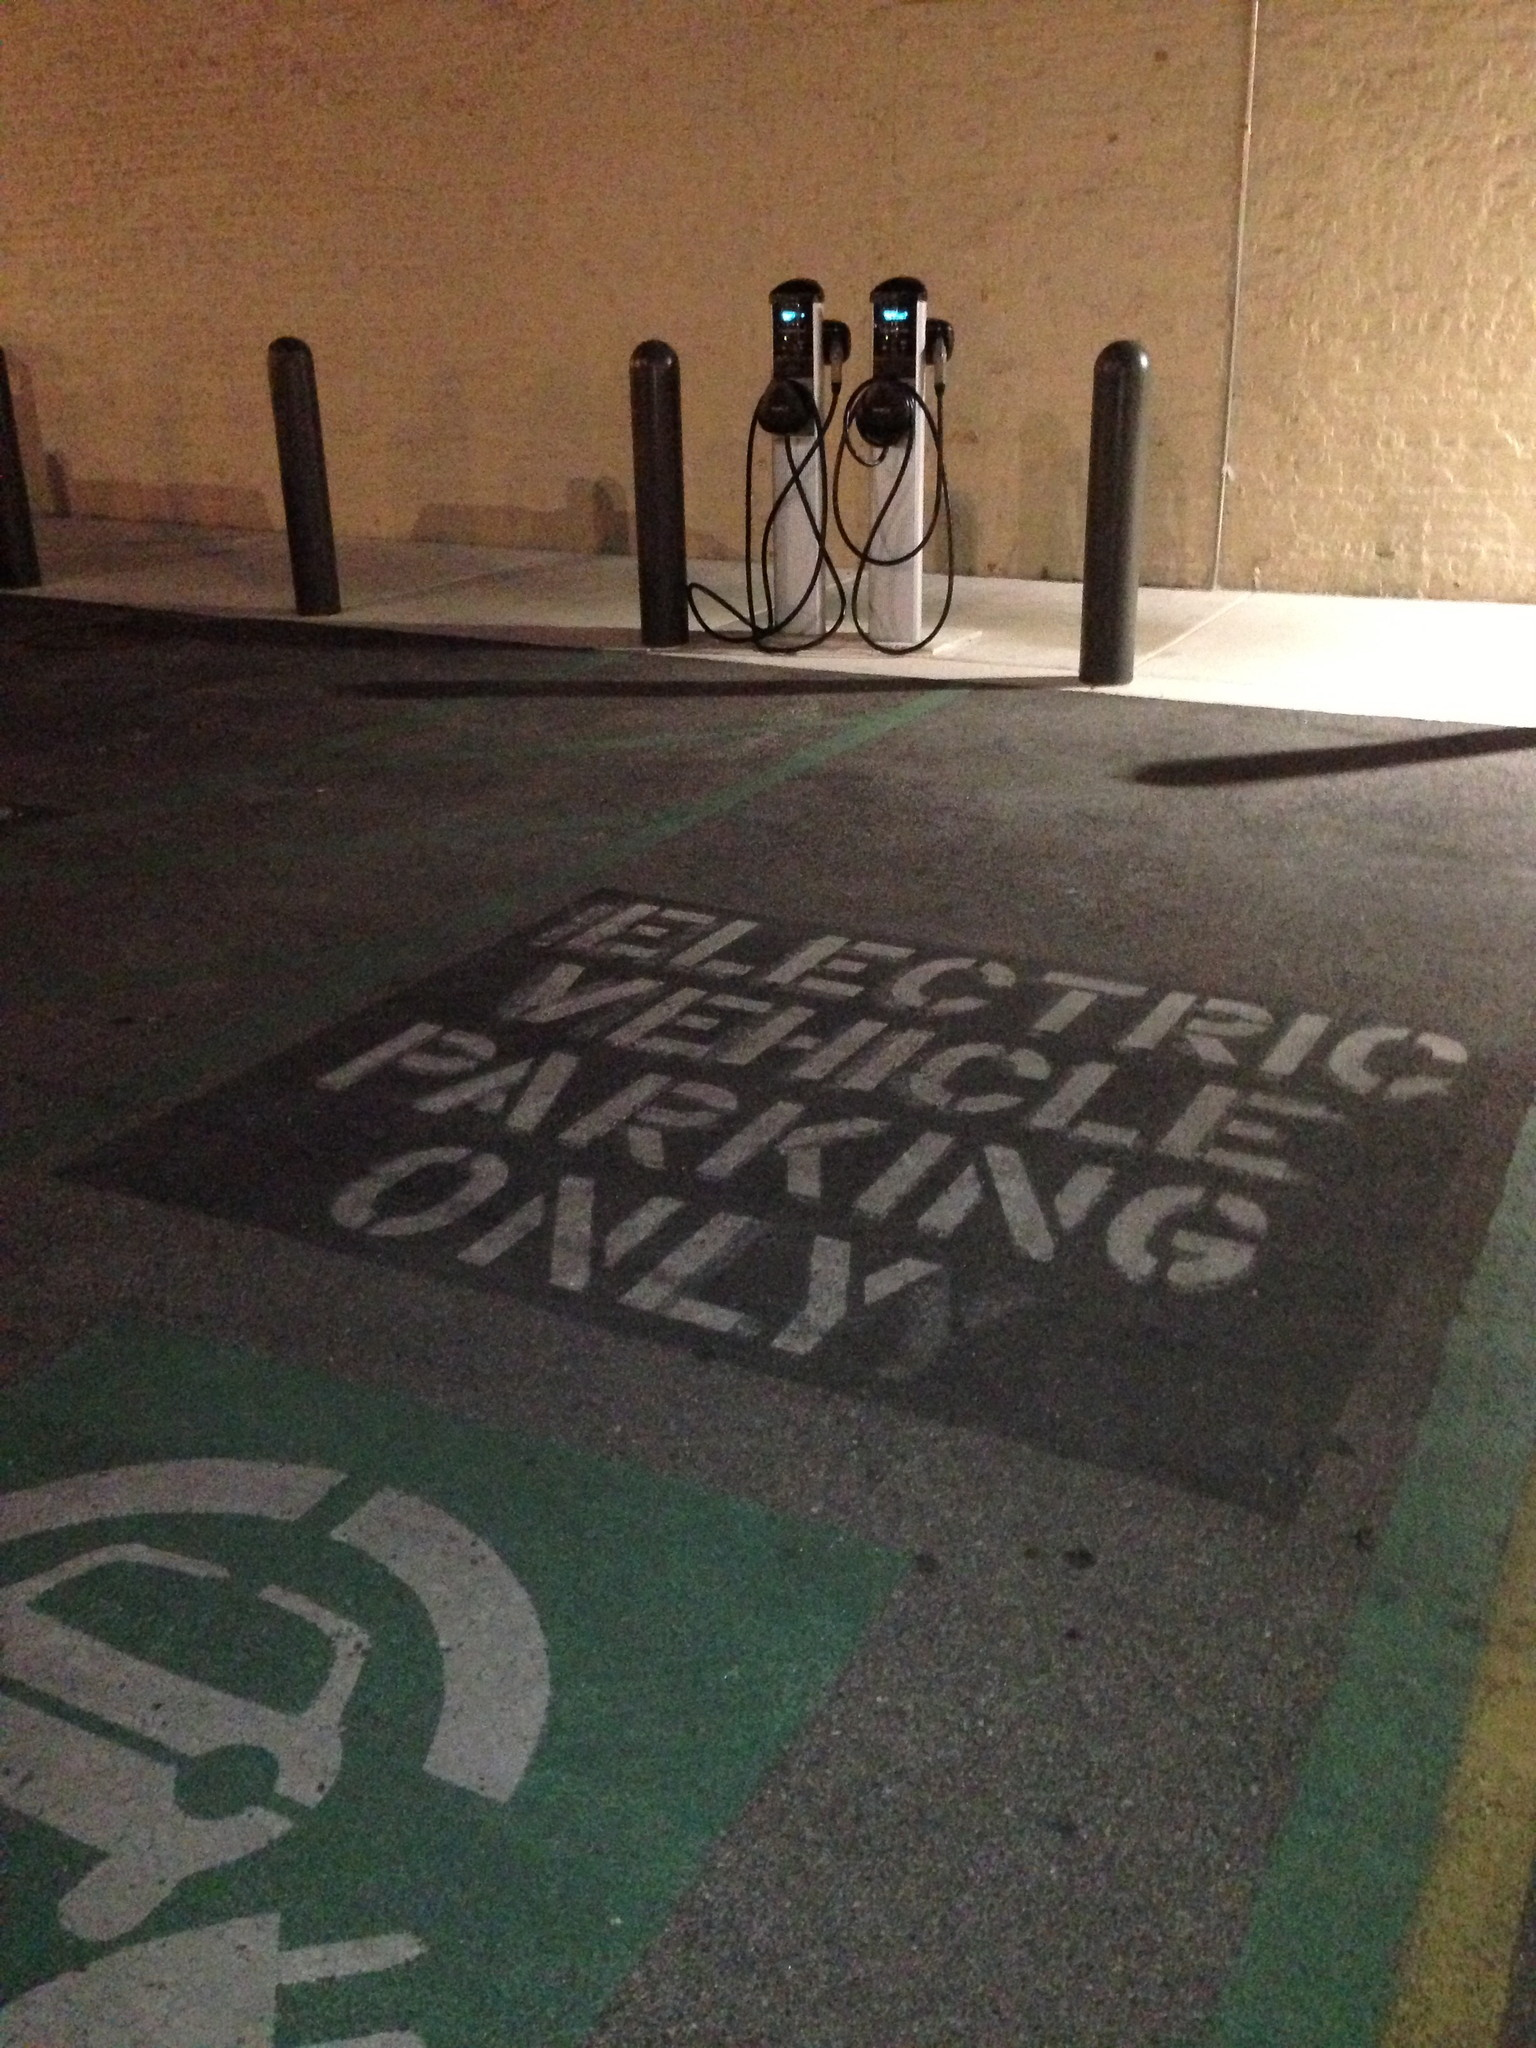 The Walgreens in Andersonville (5440 N. Clark) in Chicago hosts Level 2 charging for electric vehicles.